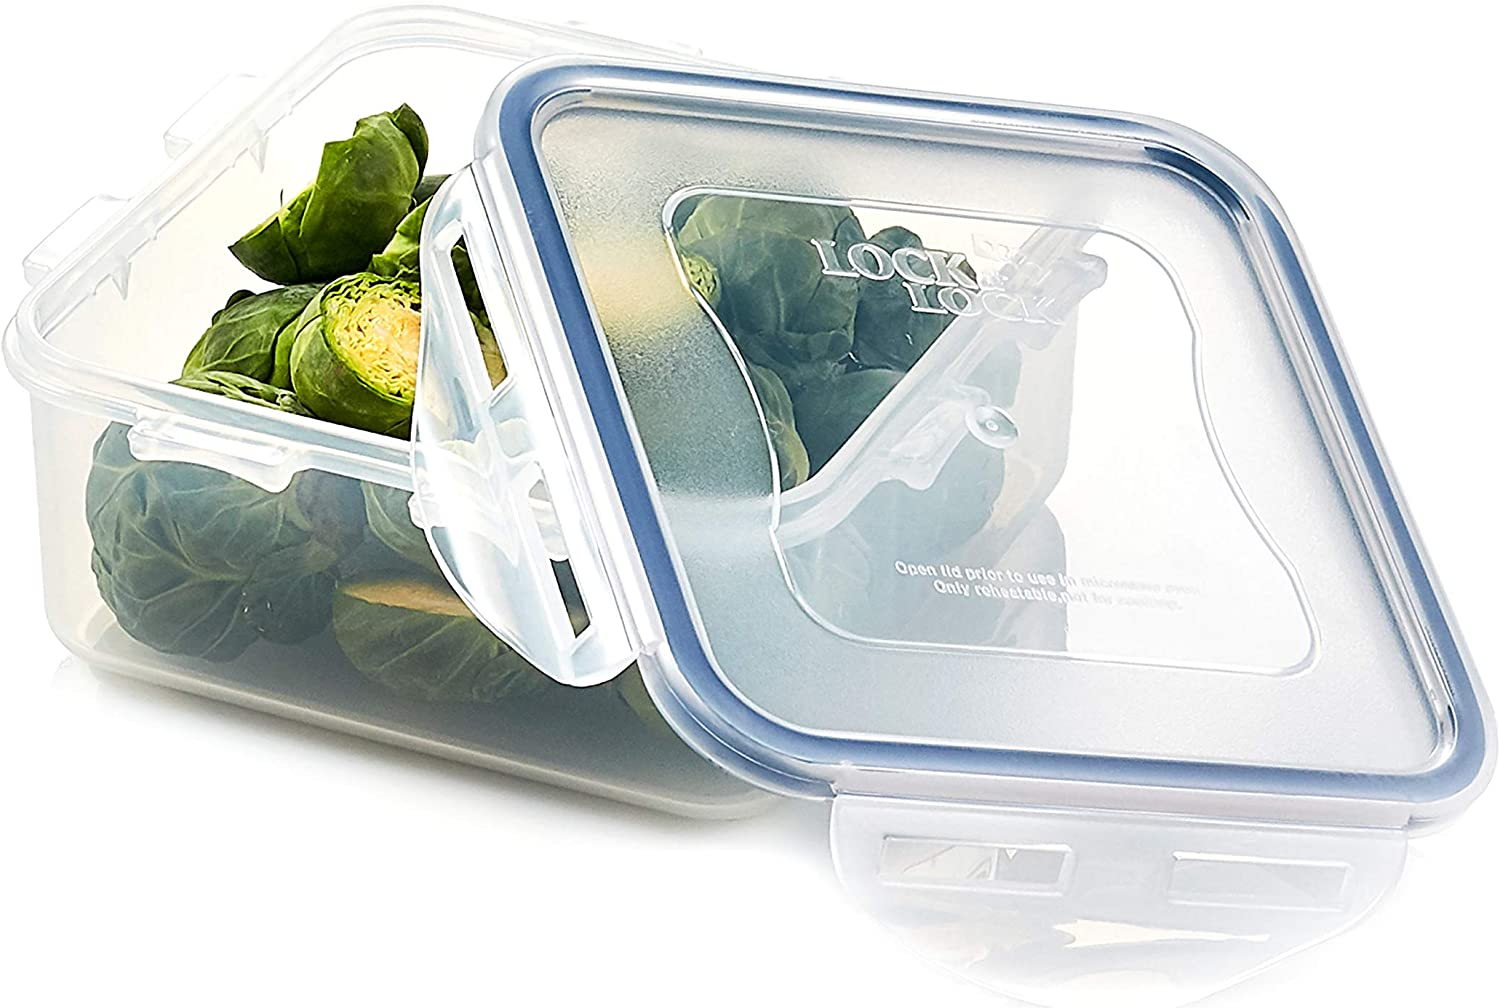 LOCK & LOCK Easy Essentials Food Storage lids/Airtight containers, BPA Free, Square-20 oz-for Coffee, Clear